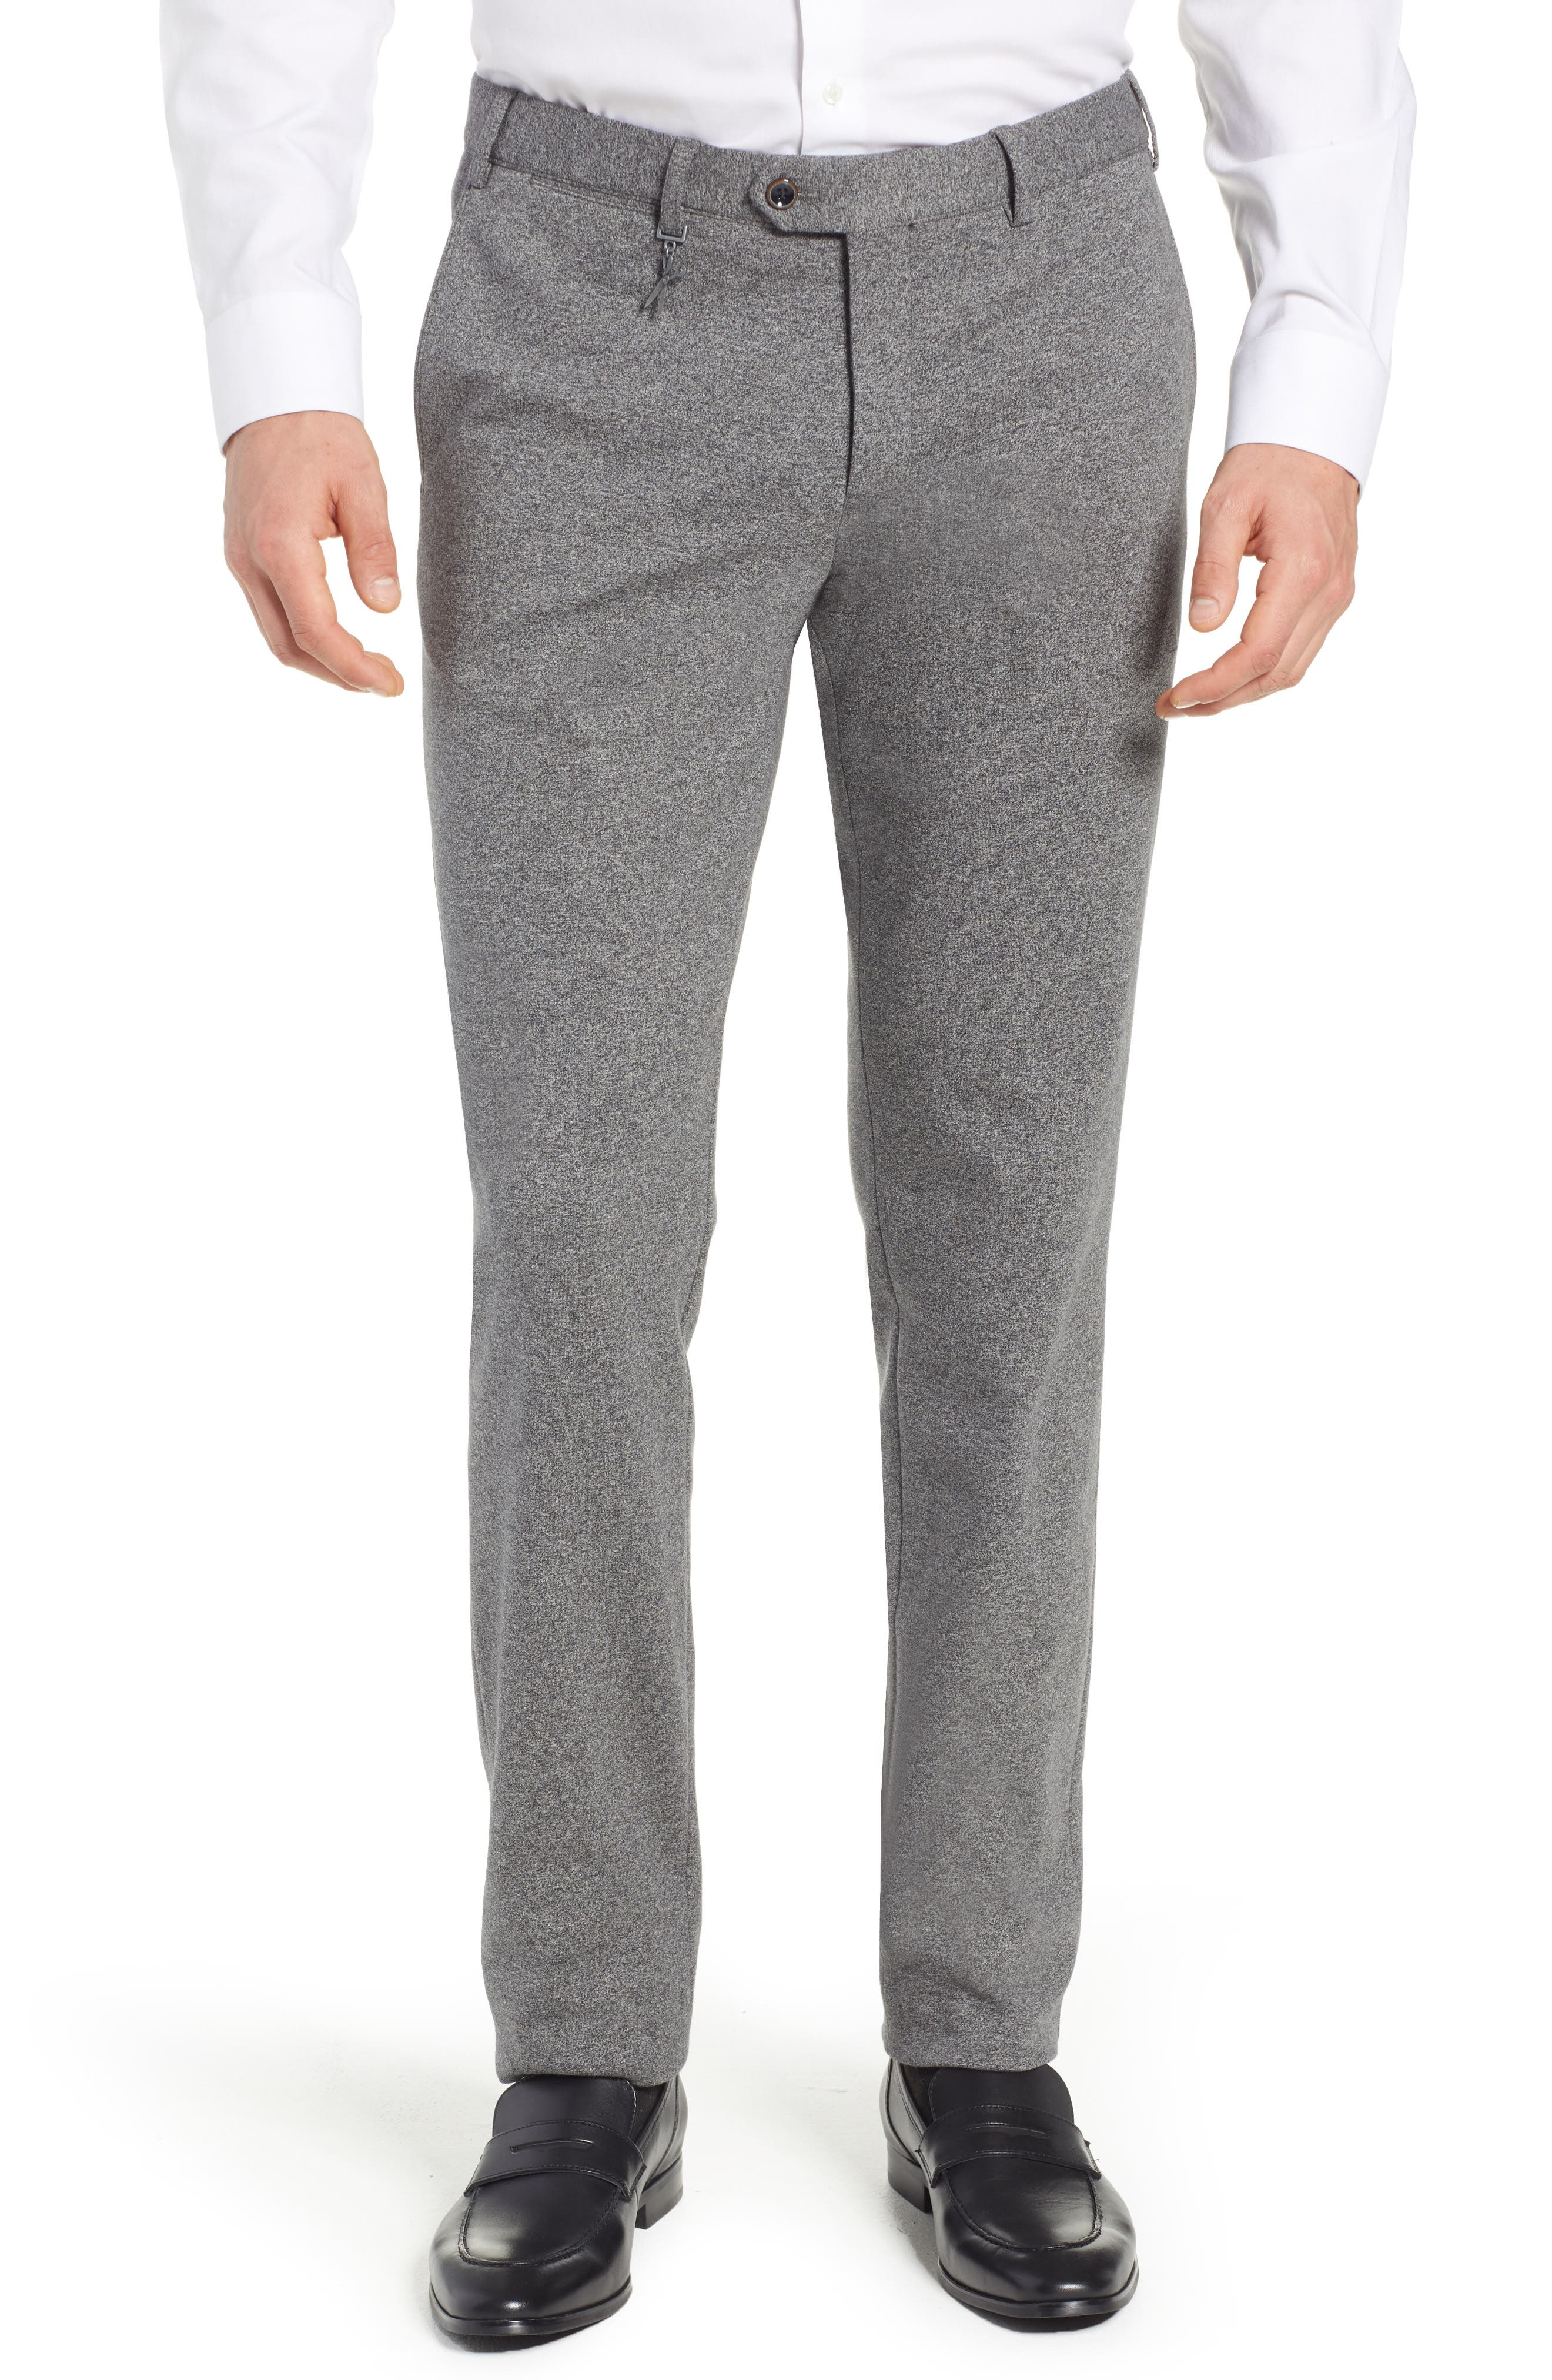 Tero Trim Fit Flat Front Solid Cotton Trousers,                         Main,                         color, GREY